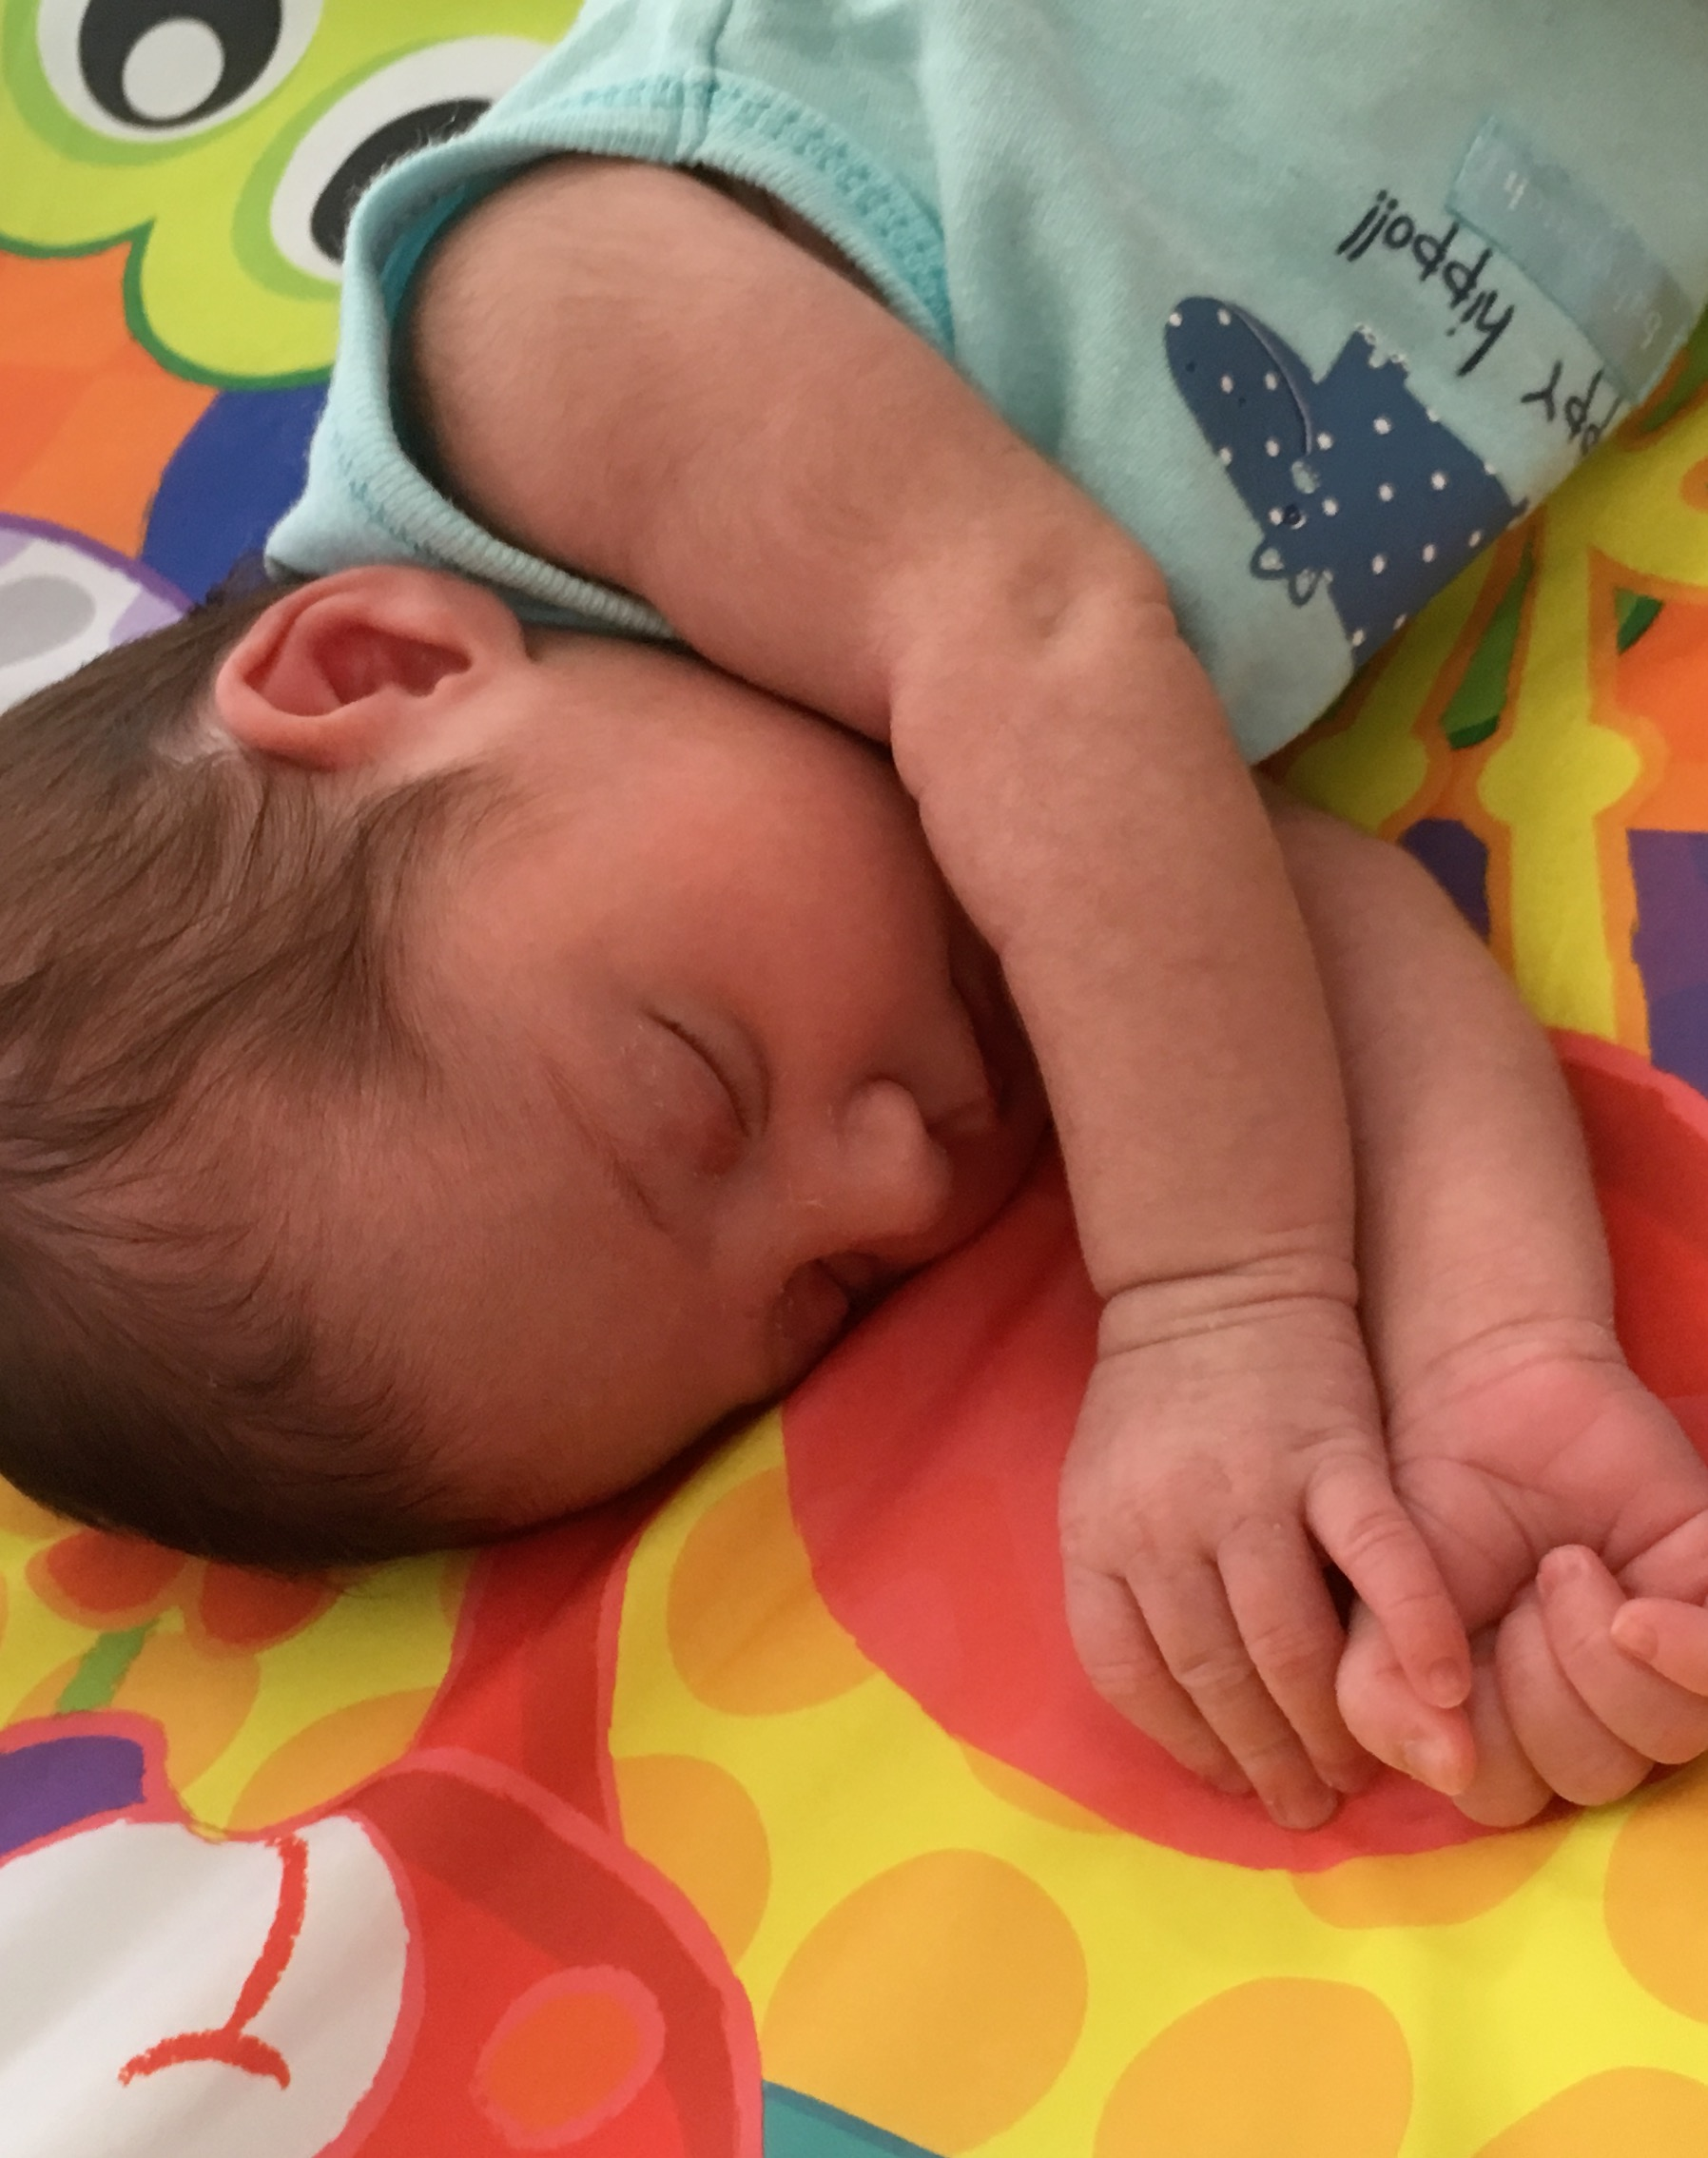 Photo of my 3 week old daughter, nicknamed Rabbit, sleeping on a colourful play mat.